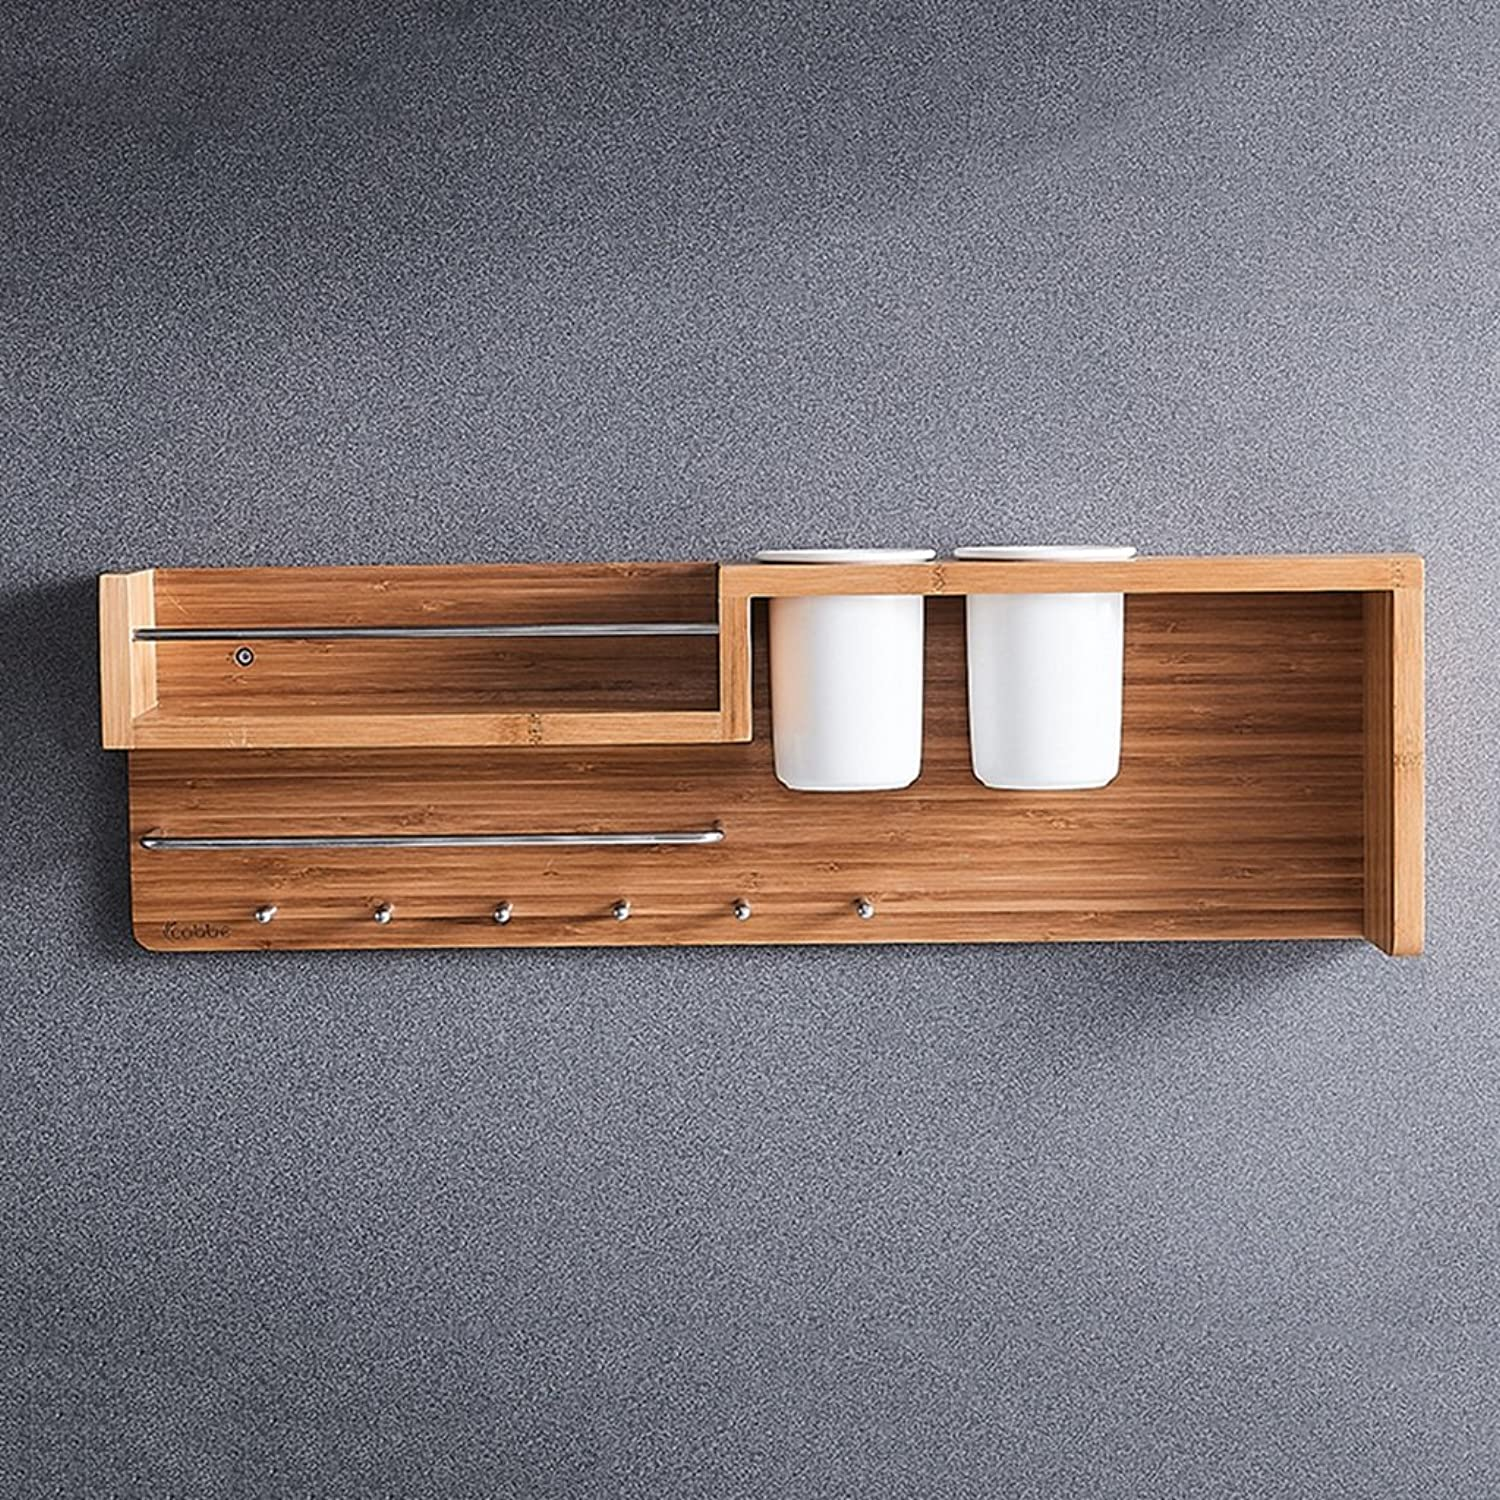 Kitchen Shelf Storage Rack, Wall-Mounted Bamboo Spice Shelf with Ceramic Storage Cup and Hooks -by TIANTA